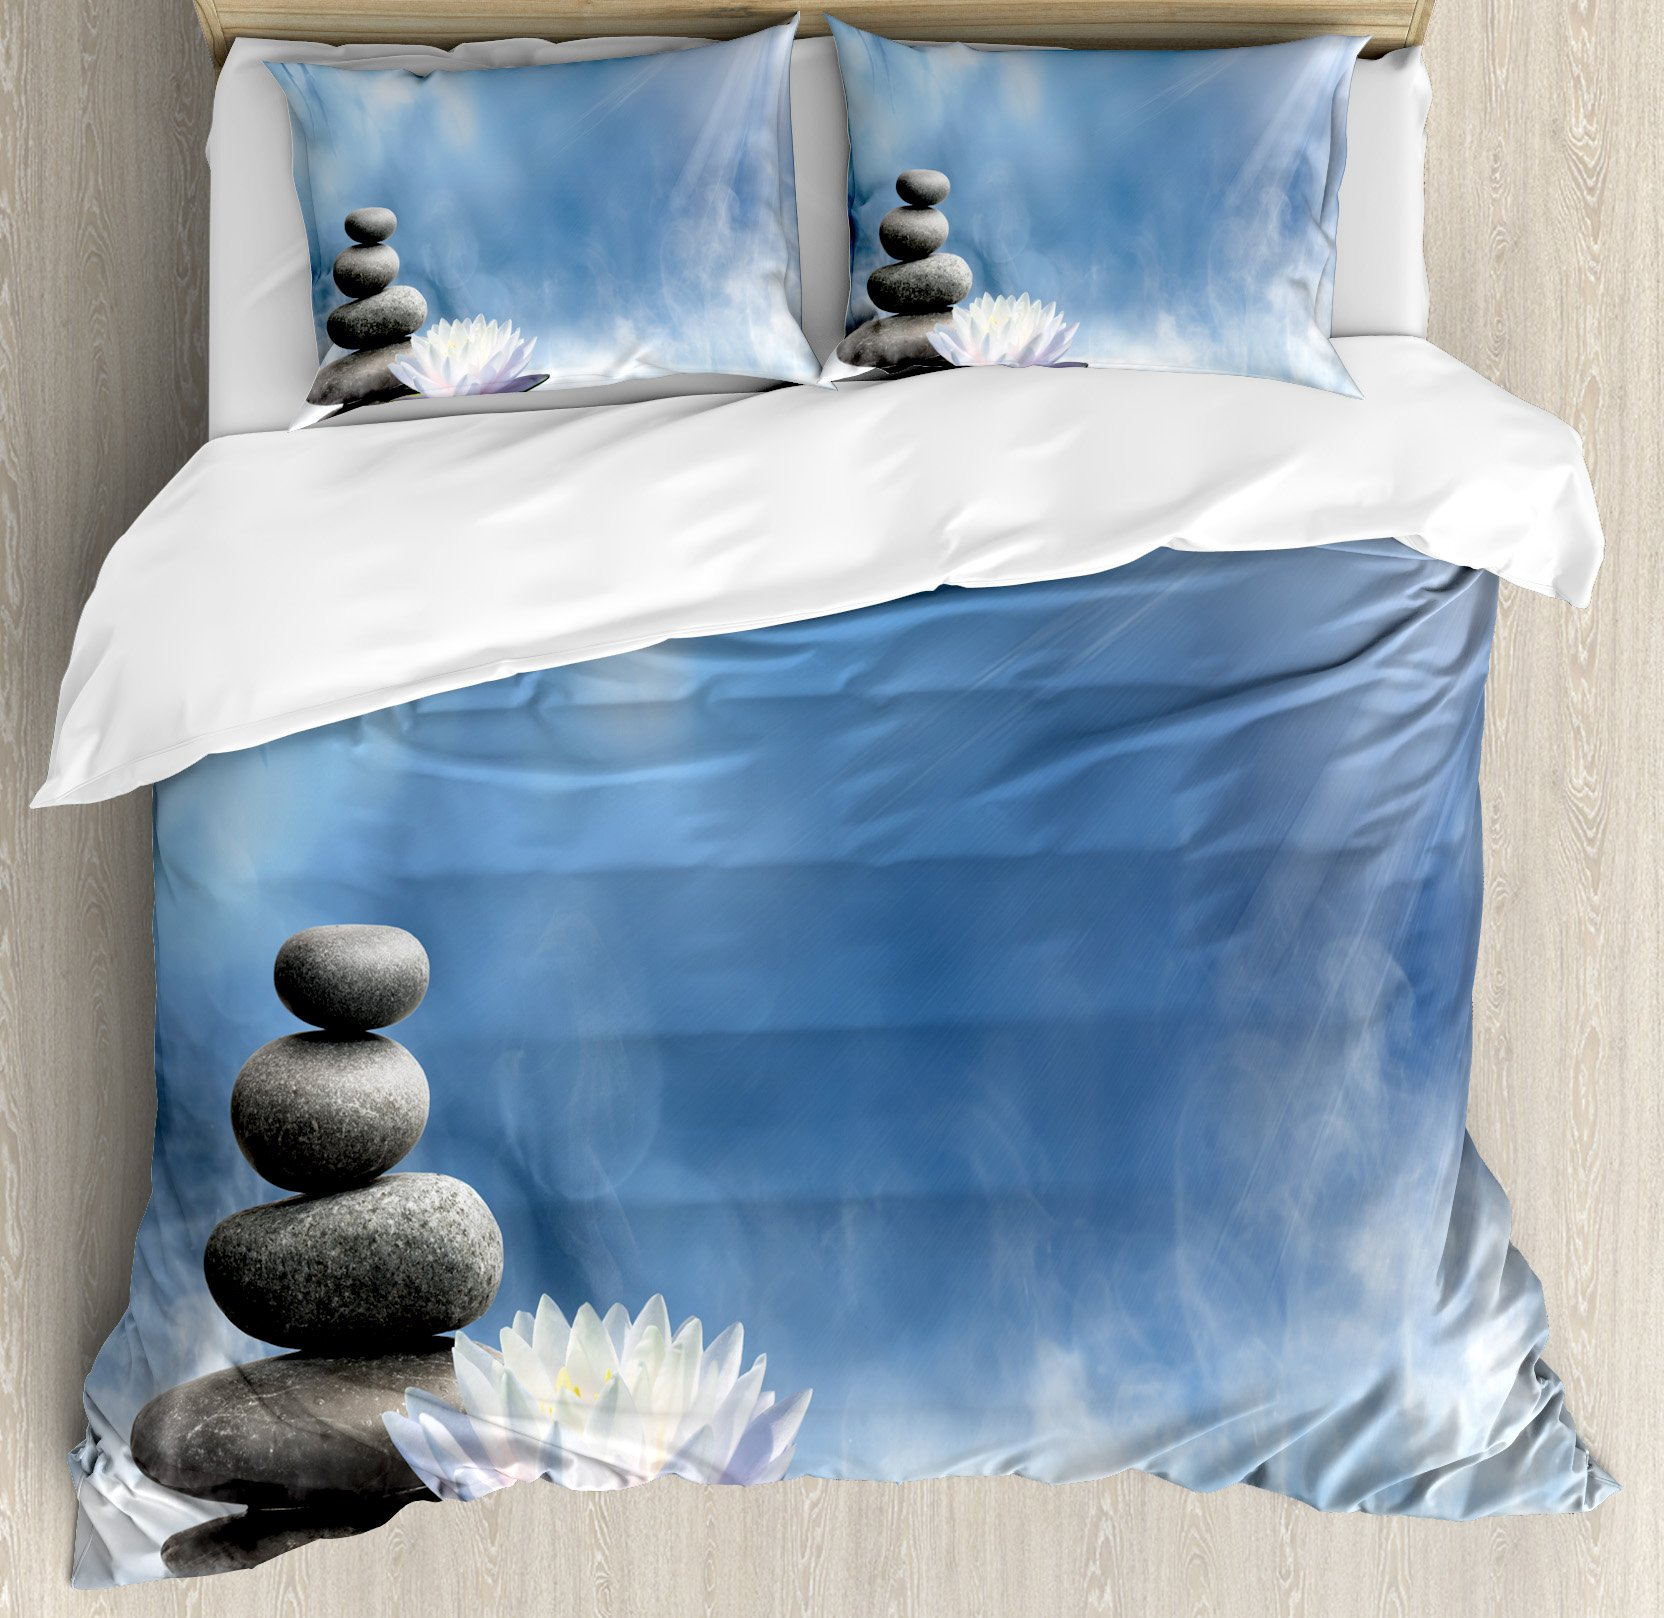 Spa Decor King Size Duvet Cover Set by Ambesonne, Purity of the Zen Massage Magic Lily Stones Sunbeams Spirituality Serenity, Decorative 3 Piece Bedding Set with 2 Pillow Shams